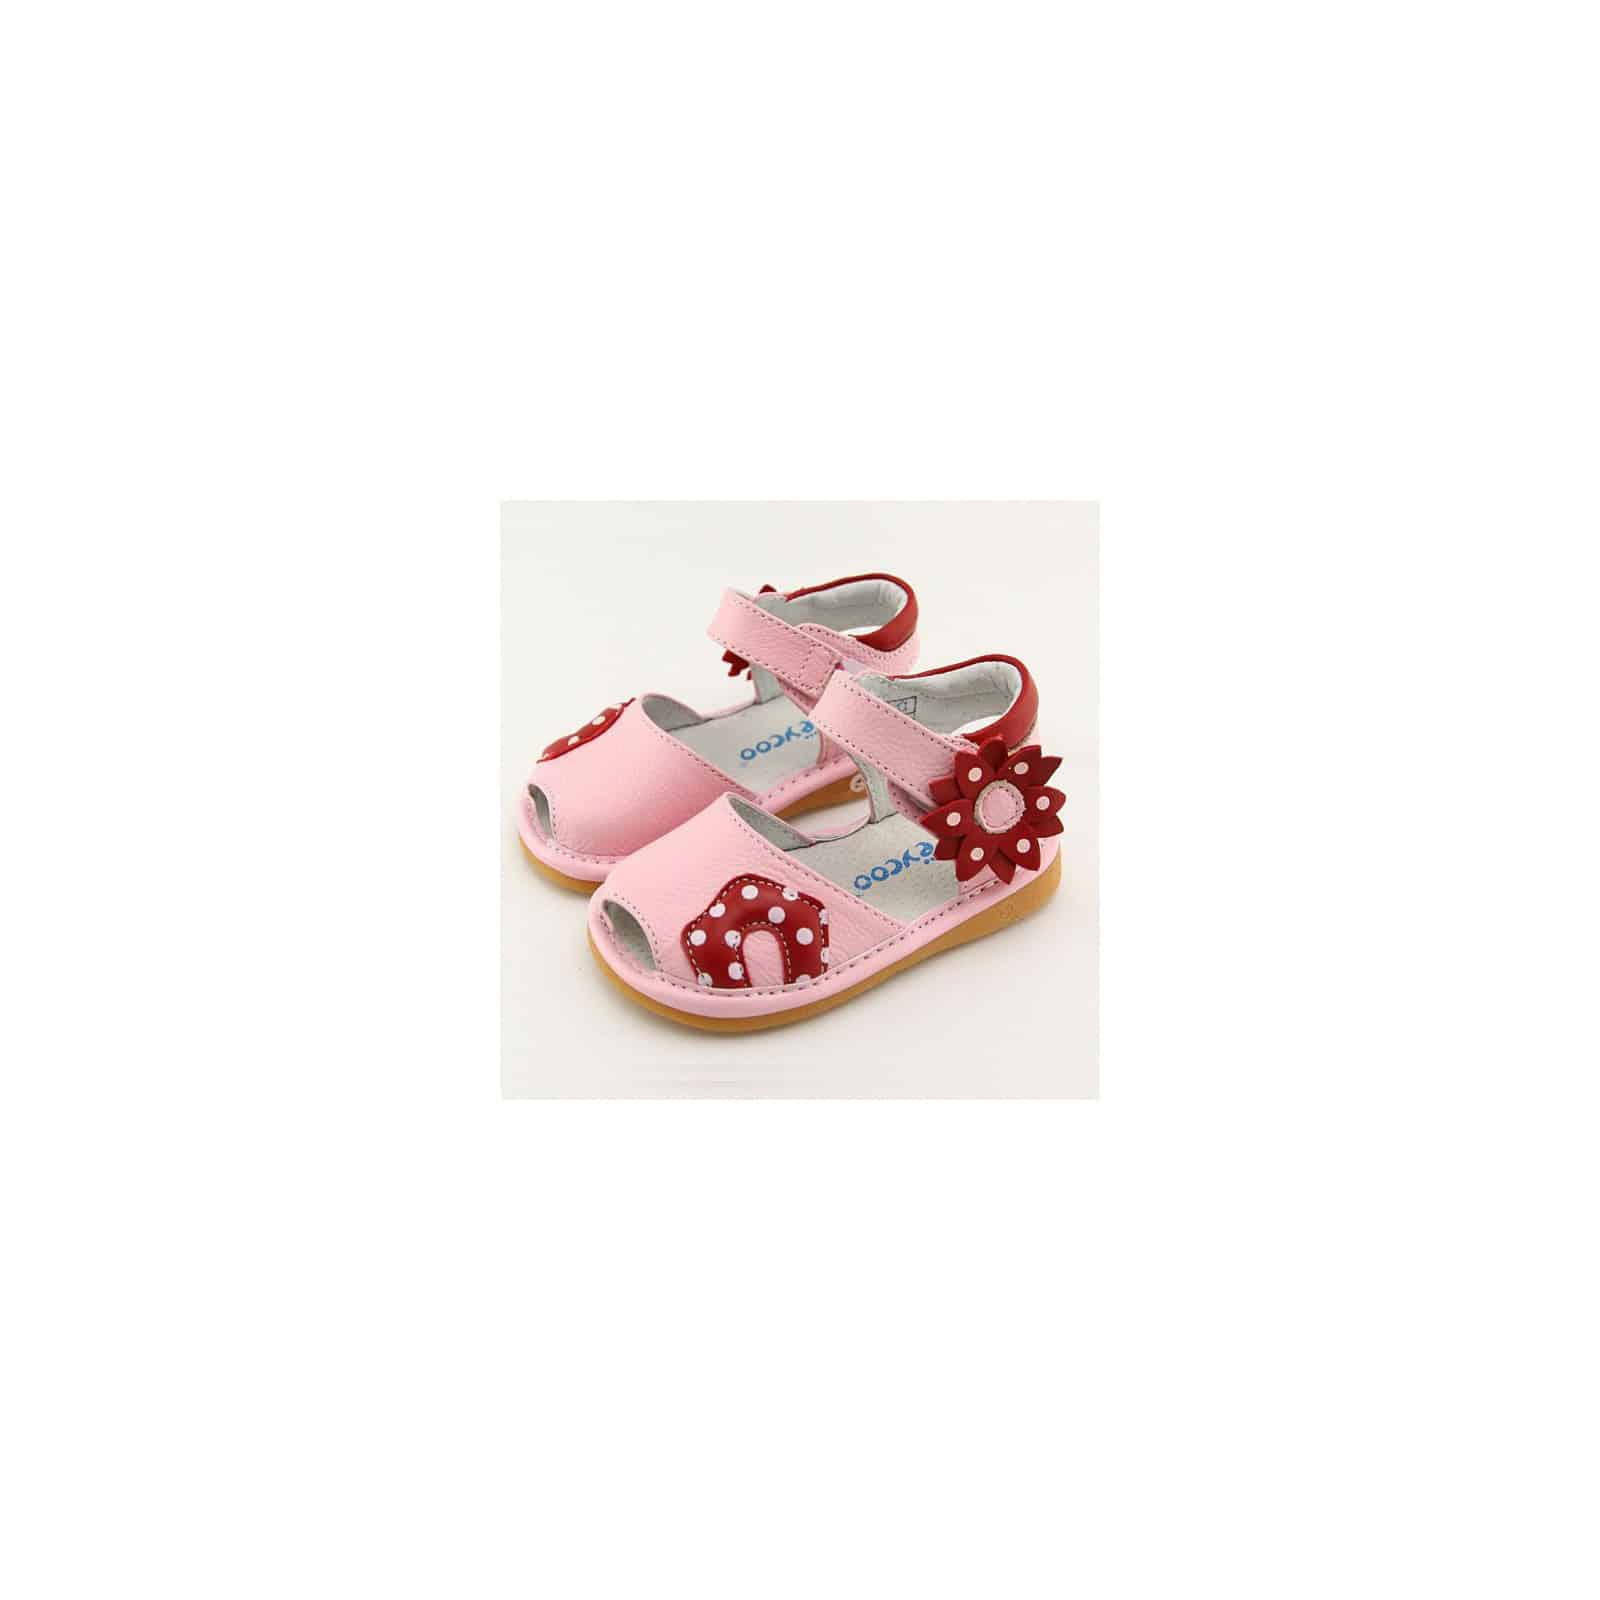 SiffletSandales À Rouge Chaussures Rose Fleur Freycoo Omny8w0vN